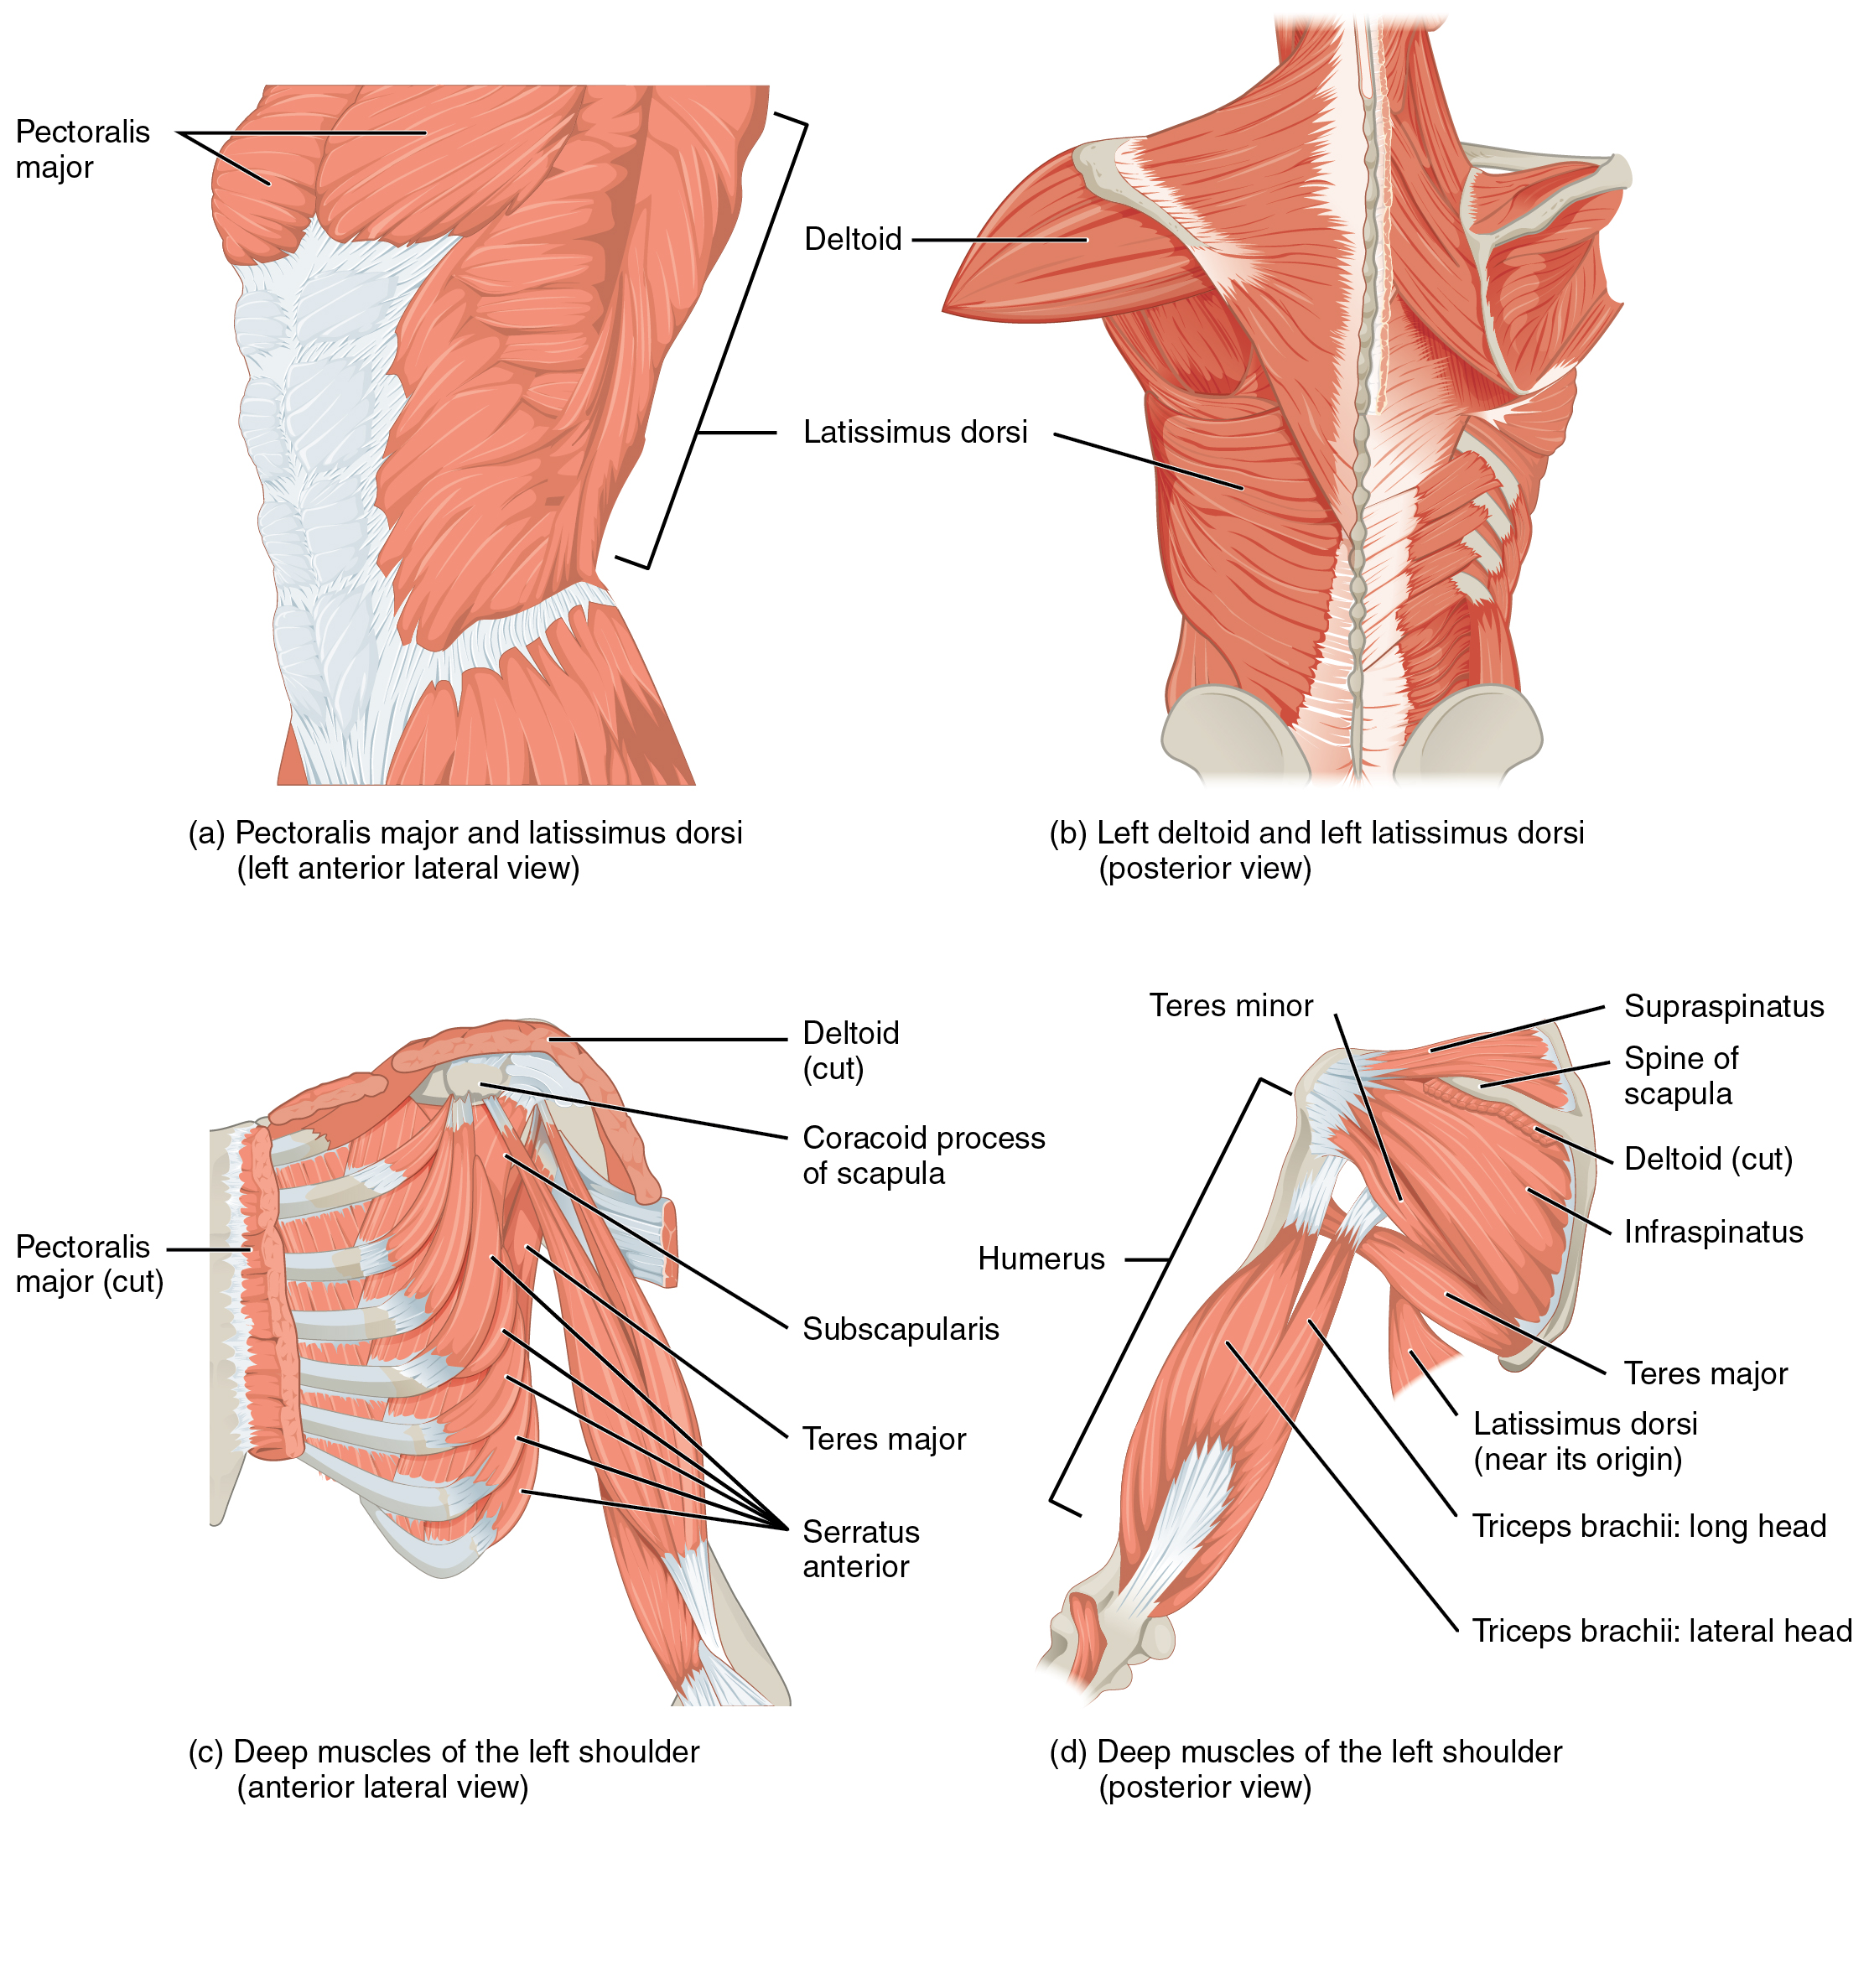 115 Muscles Of The Pectoral Girdle And Upper Limbs Anatomy And